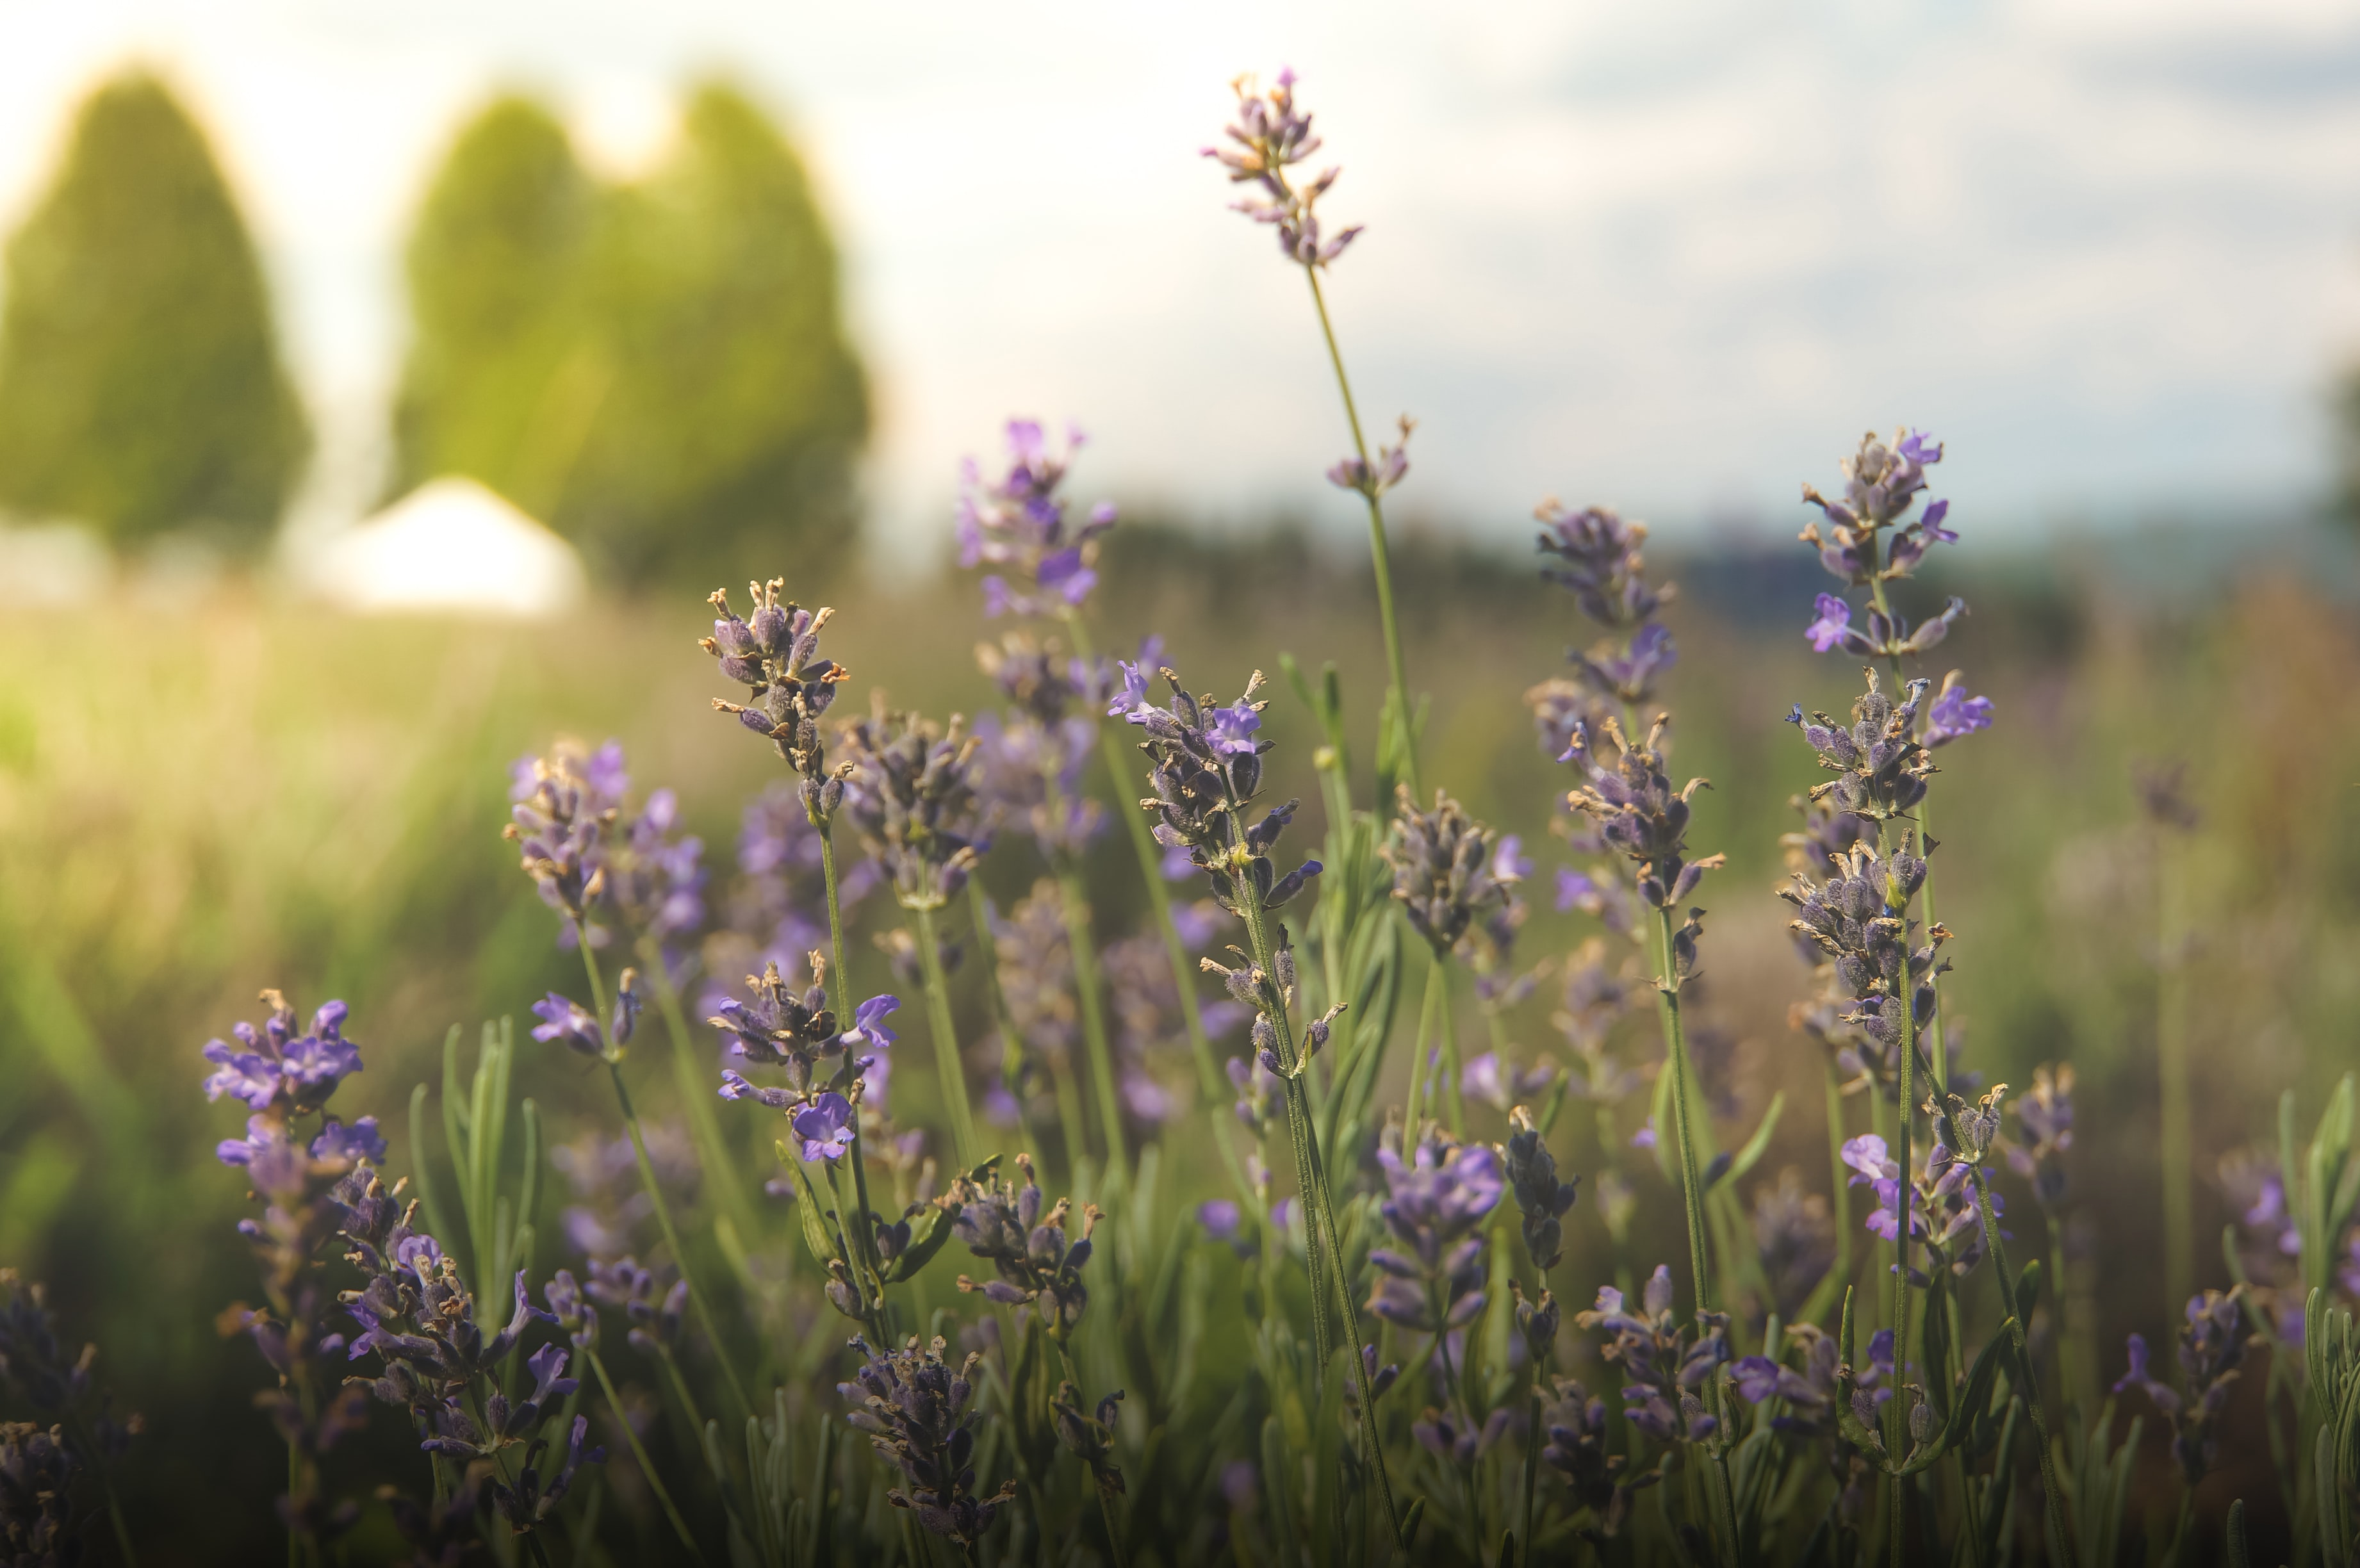 Lavender flowers in a sunny meadow